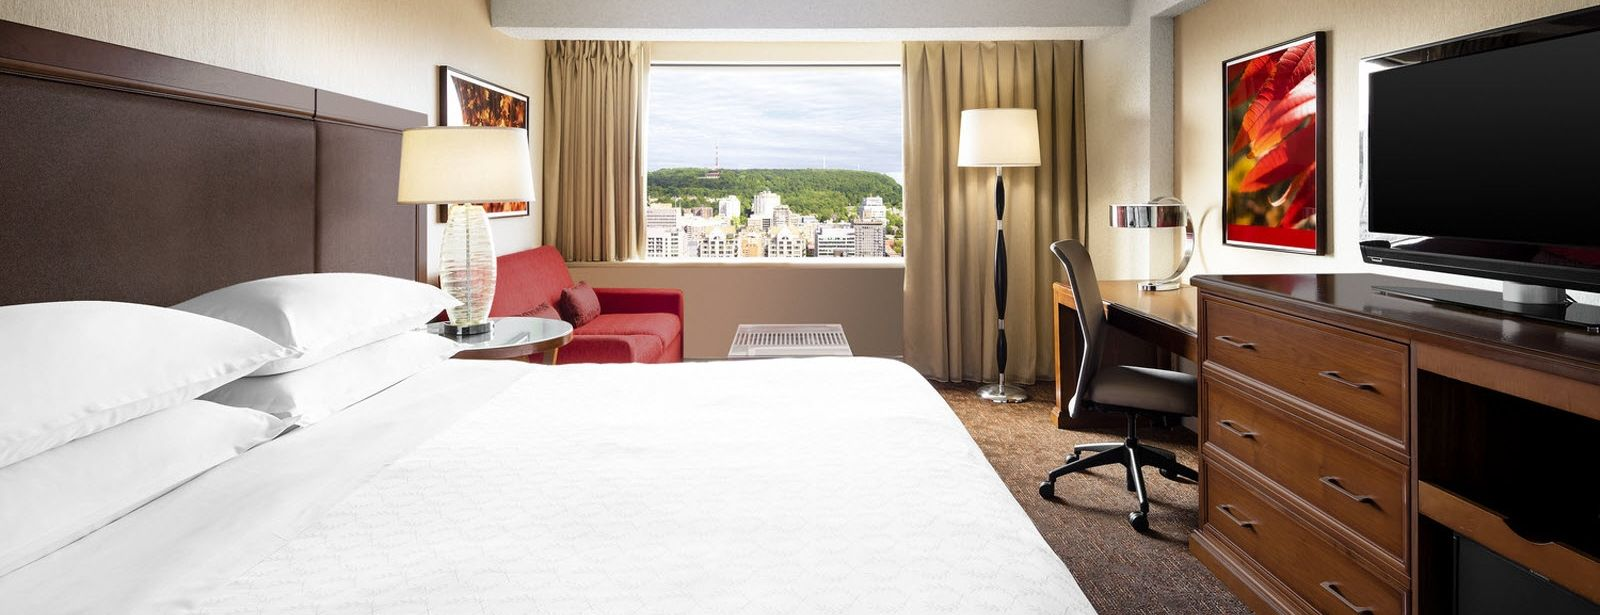 Deluxe Guest Room at Le Centre Sheraton Montreal